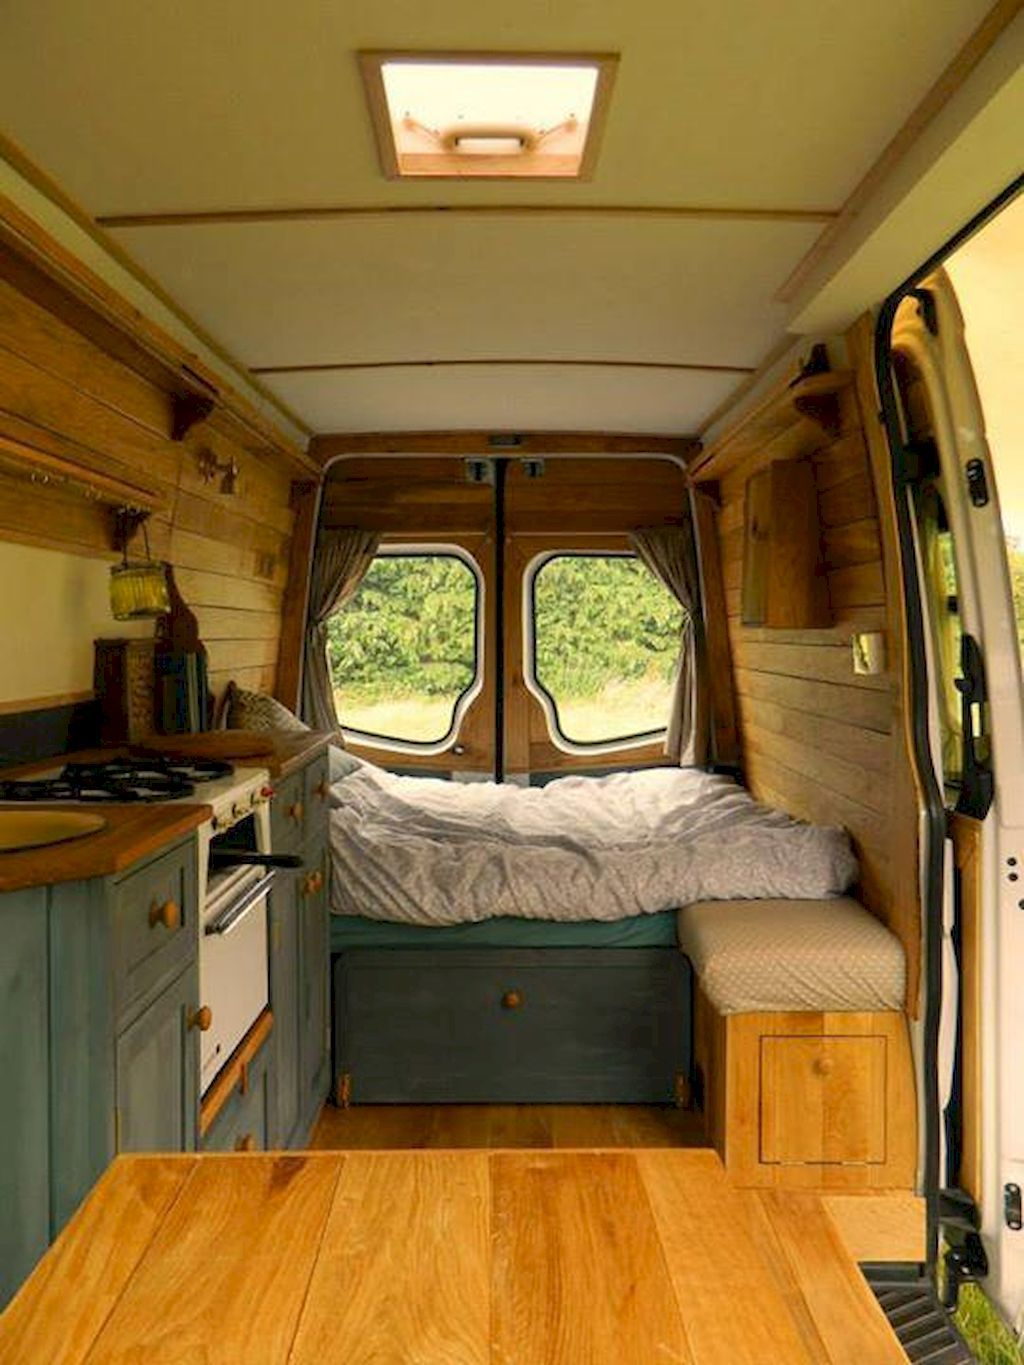 Gorgeous 75 Camper Van Interior Design And Organization Ideas Homearchite 2017 09 04